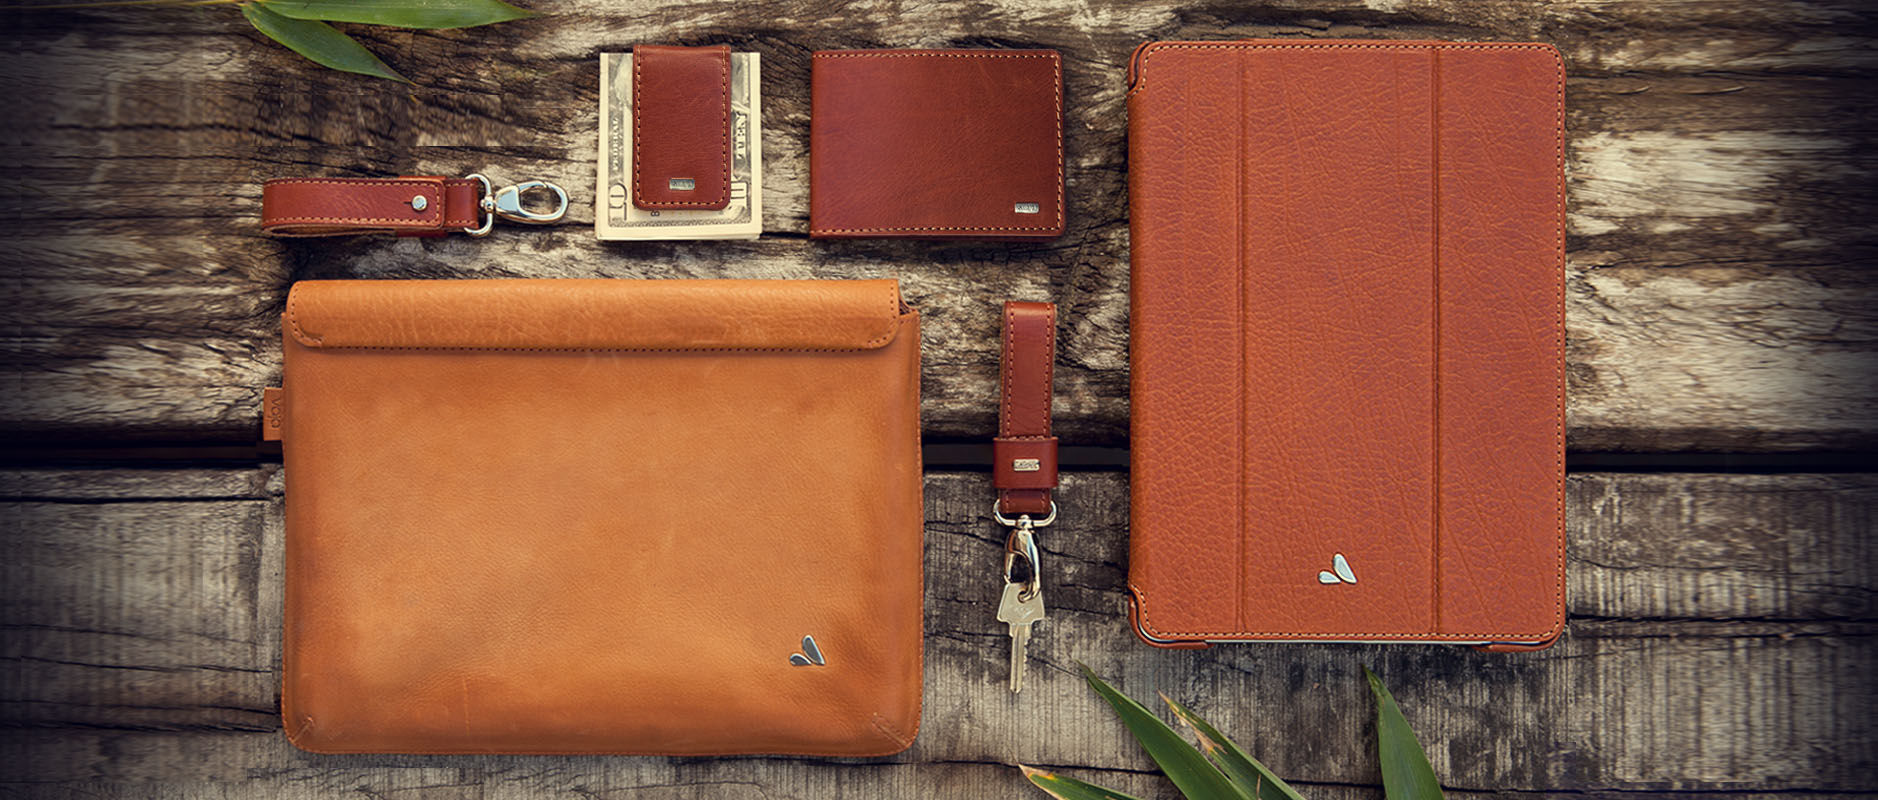 Father's Day Leather Goods